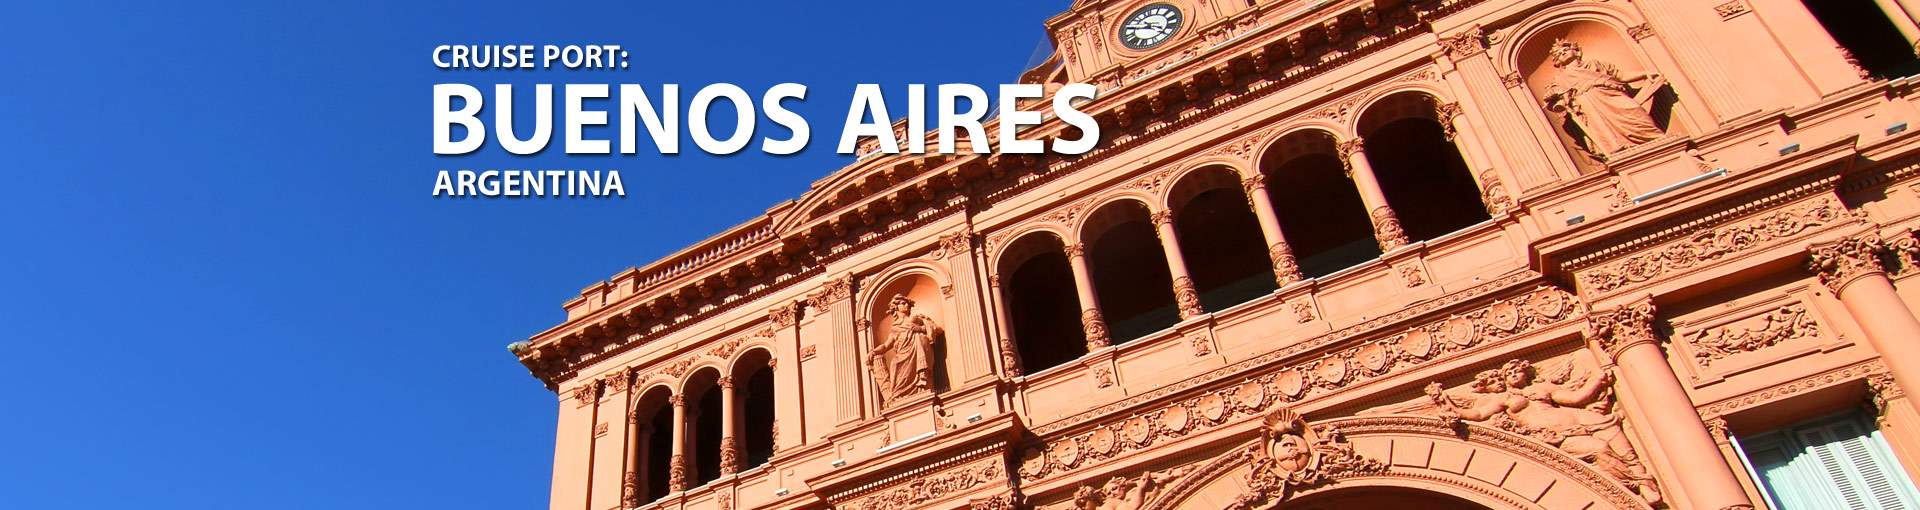 Cruises from Buenos Aires, Argentina